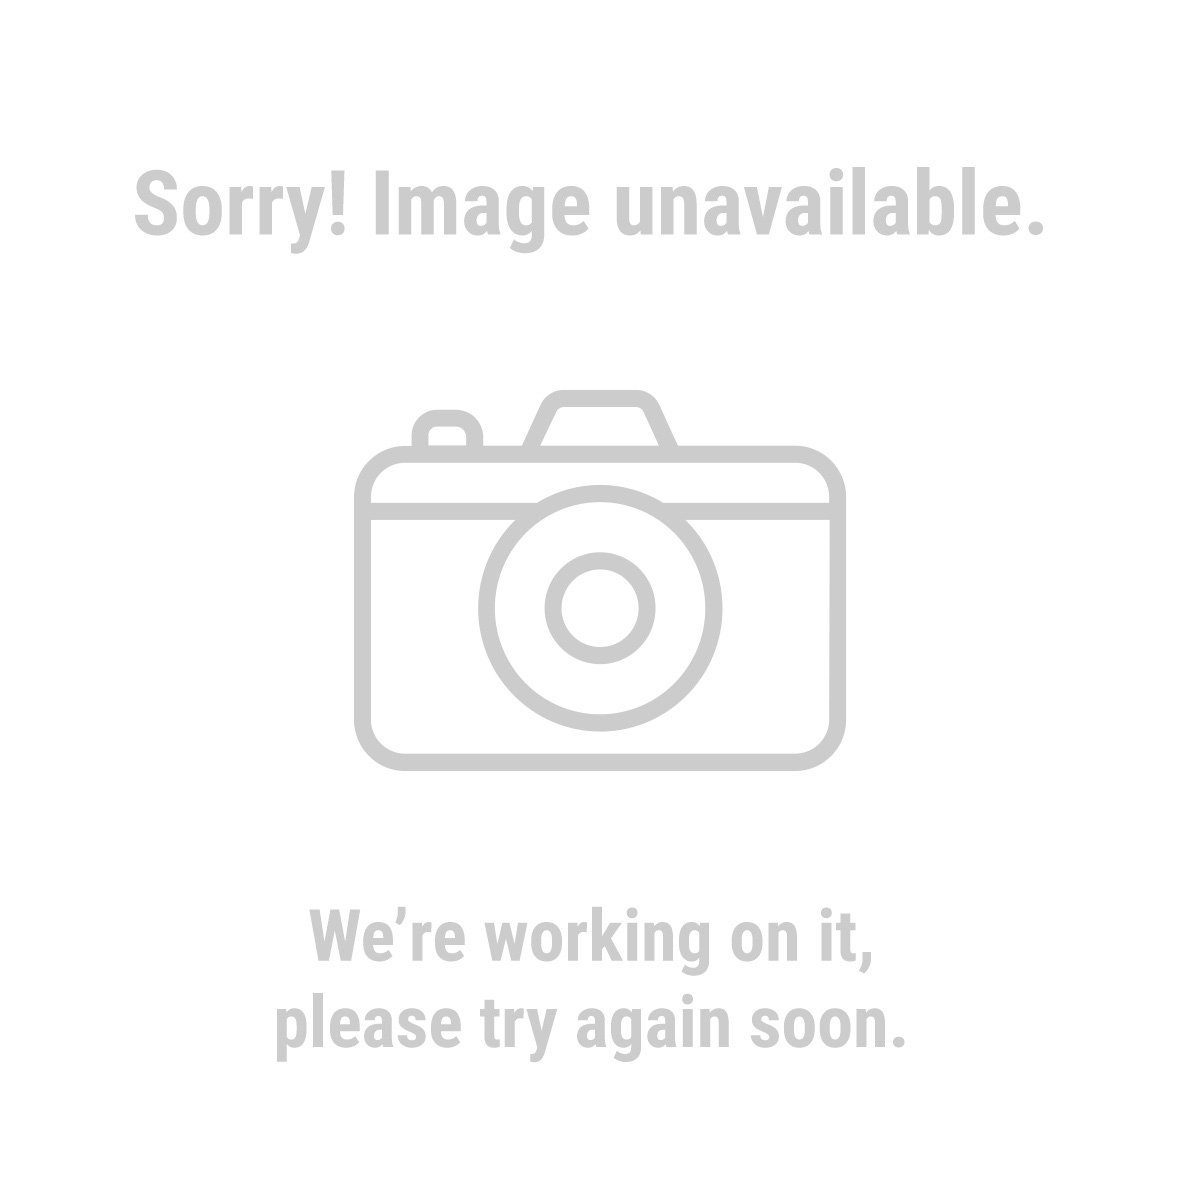 CoverPro 63297 10 ft. x 10 ft. Portable Shed